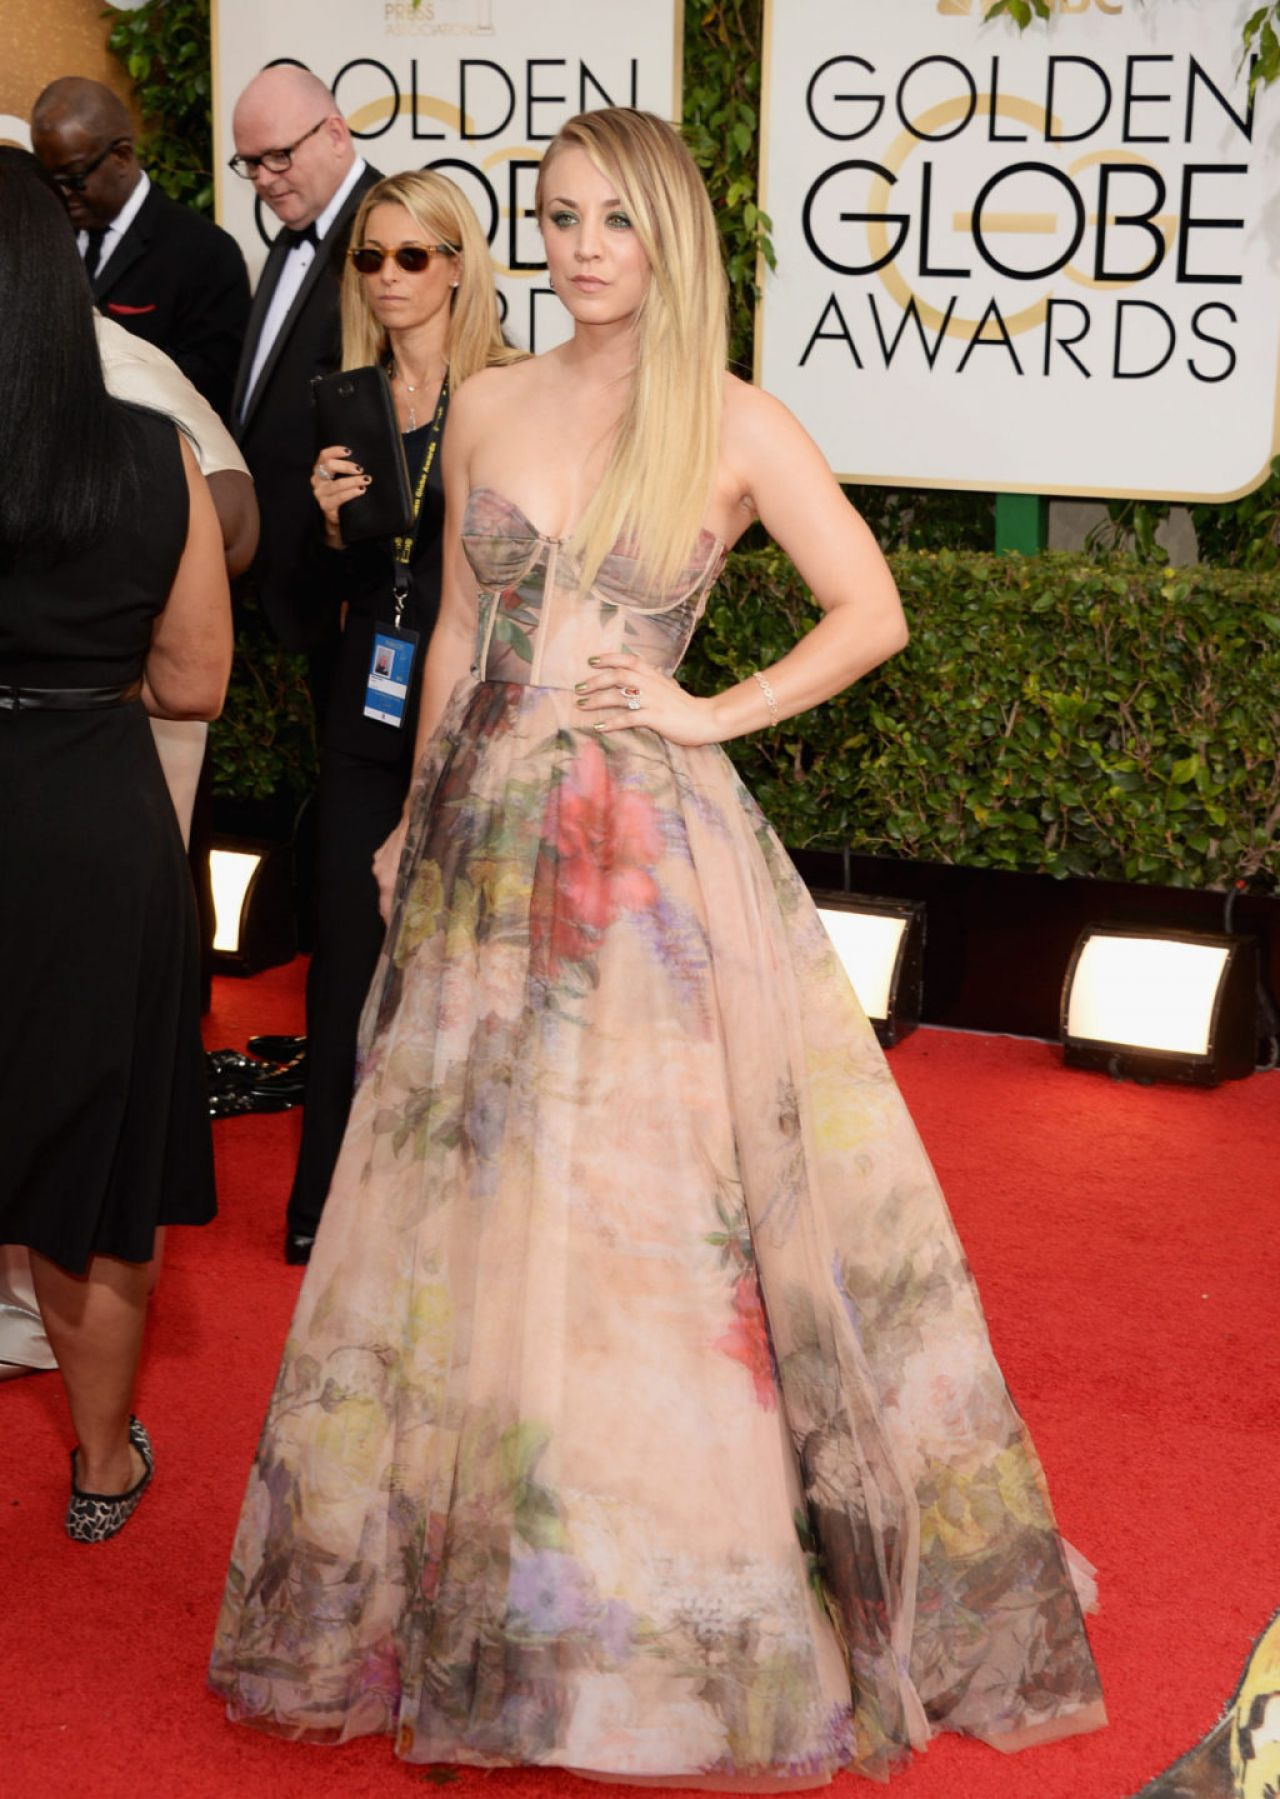 Kaley Cuoco - 71st Annual Golden Globe Awards in Beverly Hills